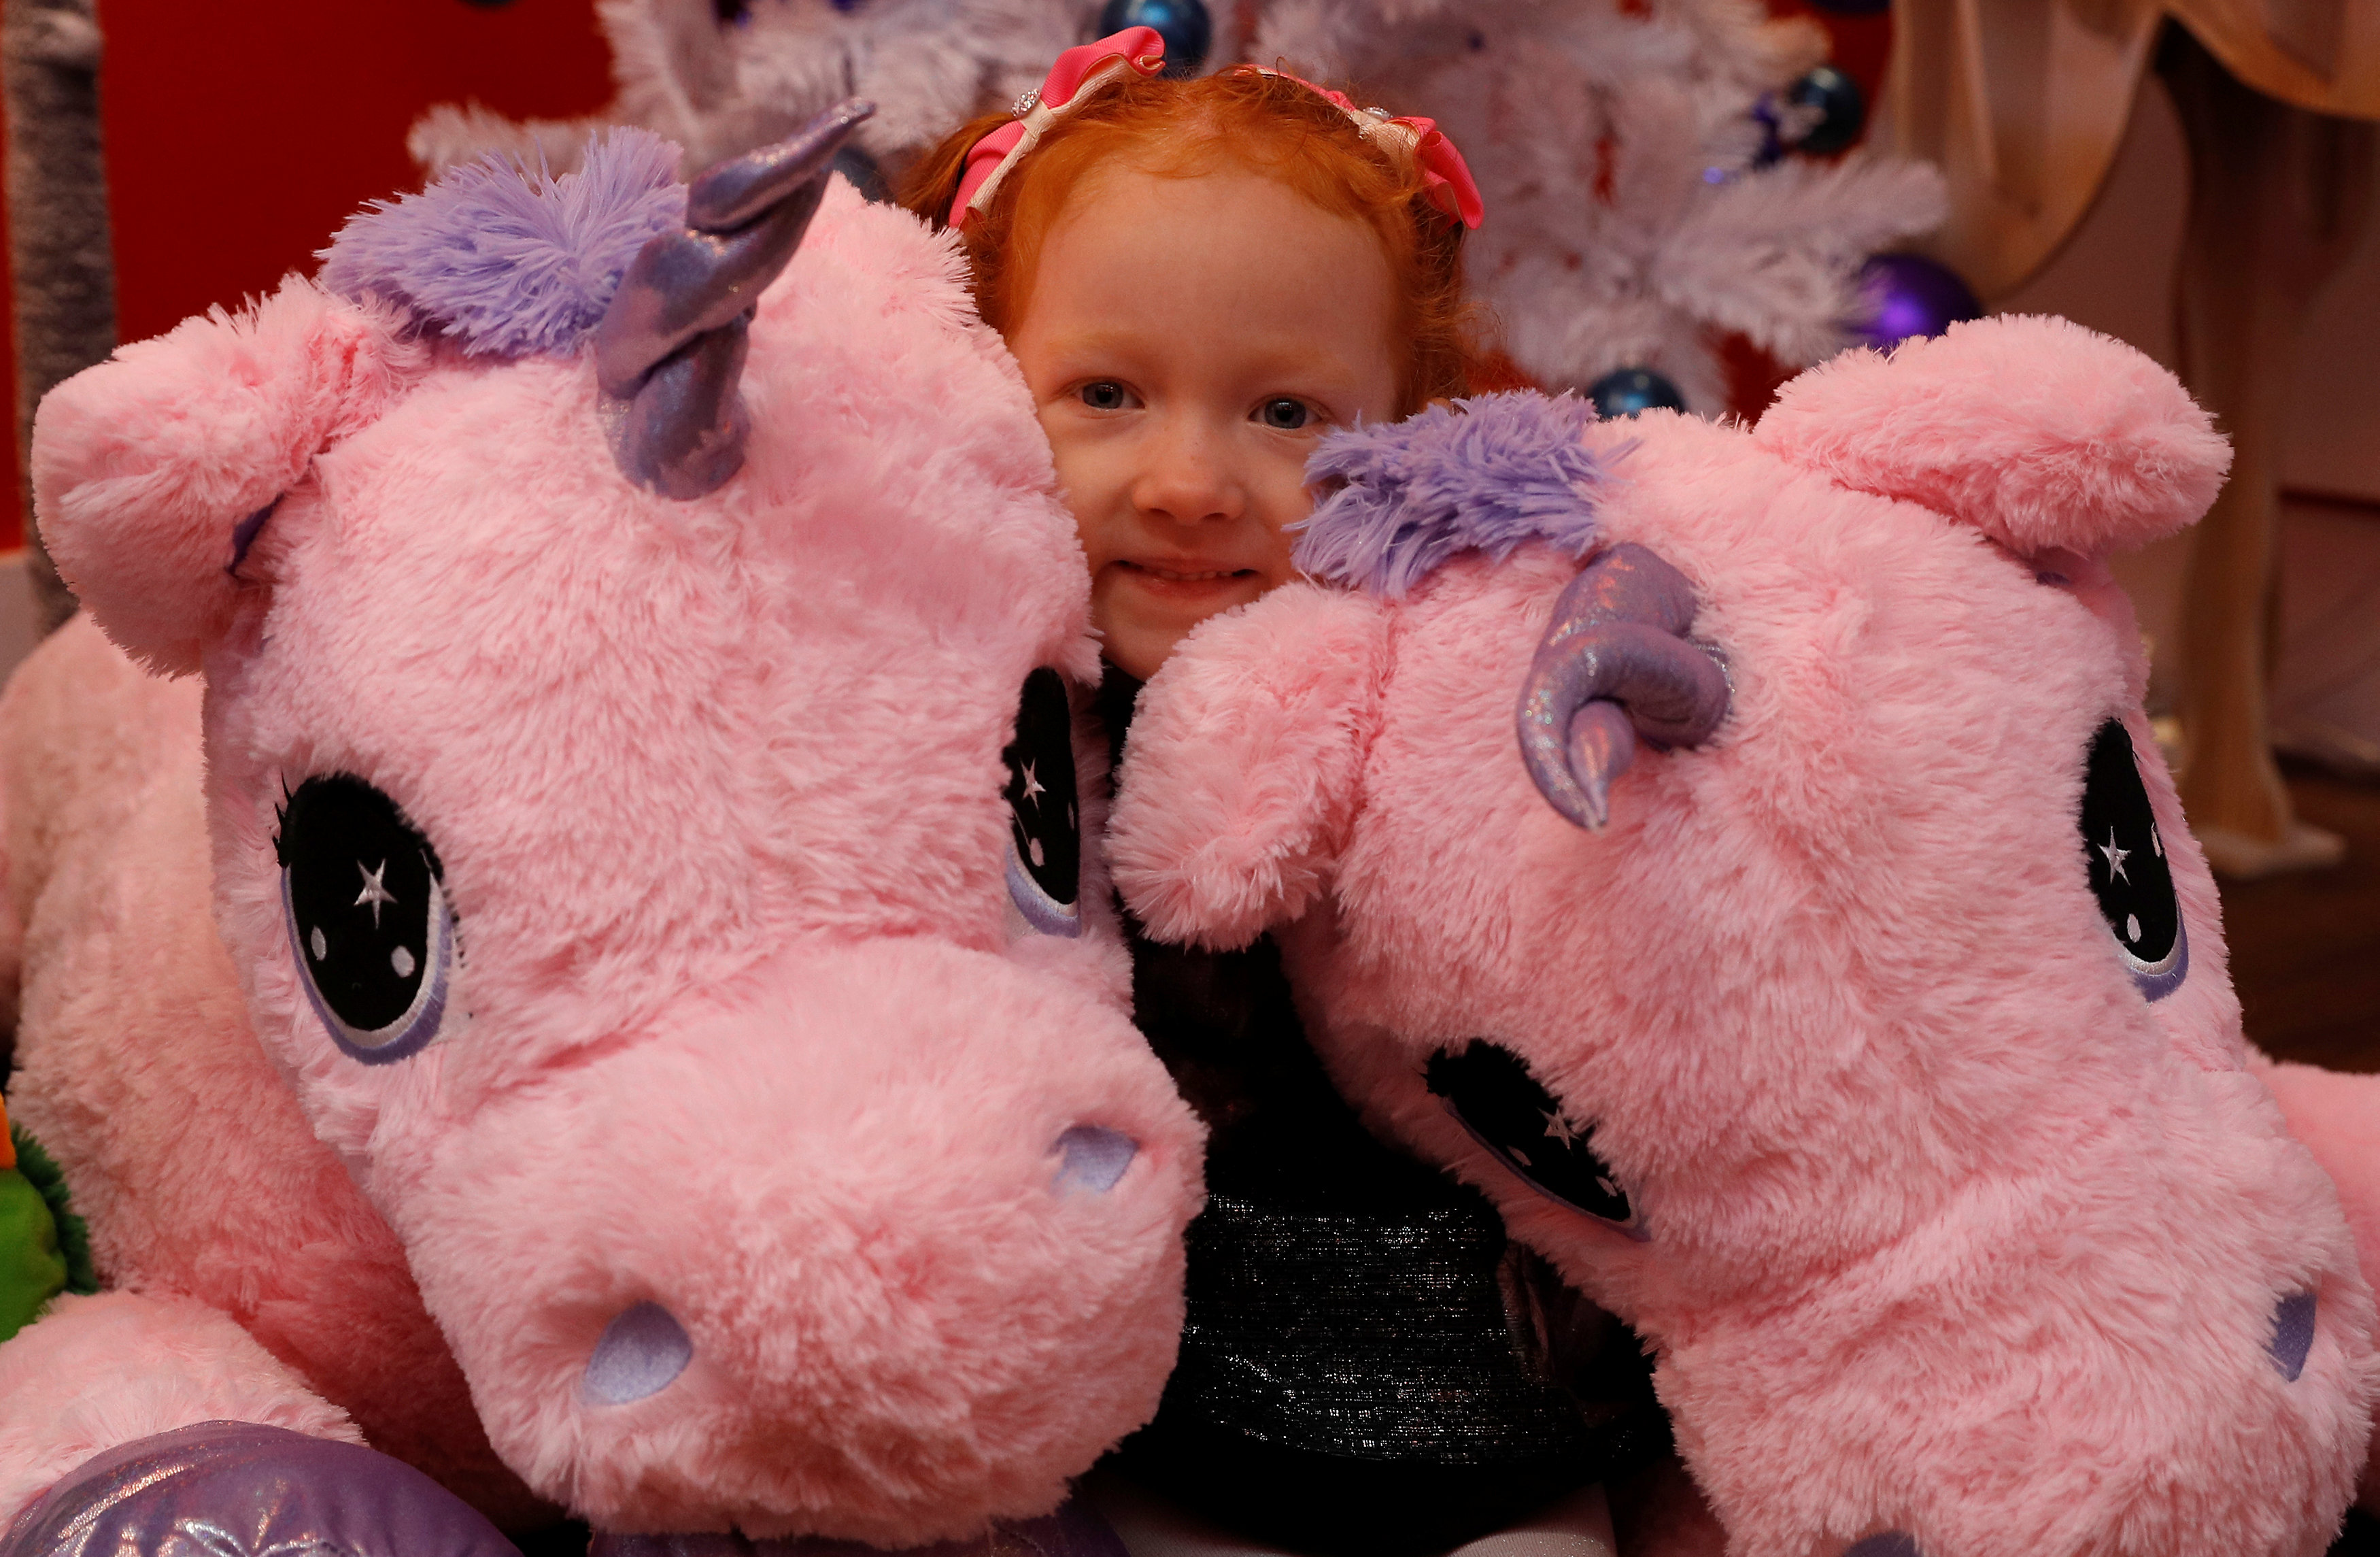 Aston Robertson-Jeyes, 3, plays with Unice Unicorn, at the launch of Hamleys top Christmas toys launch in London